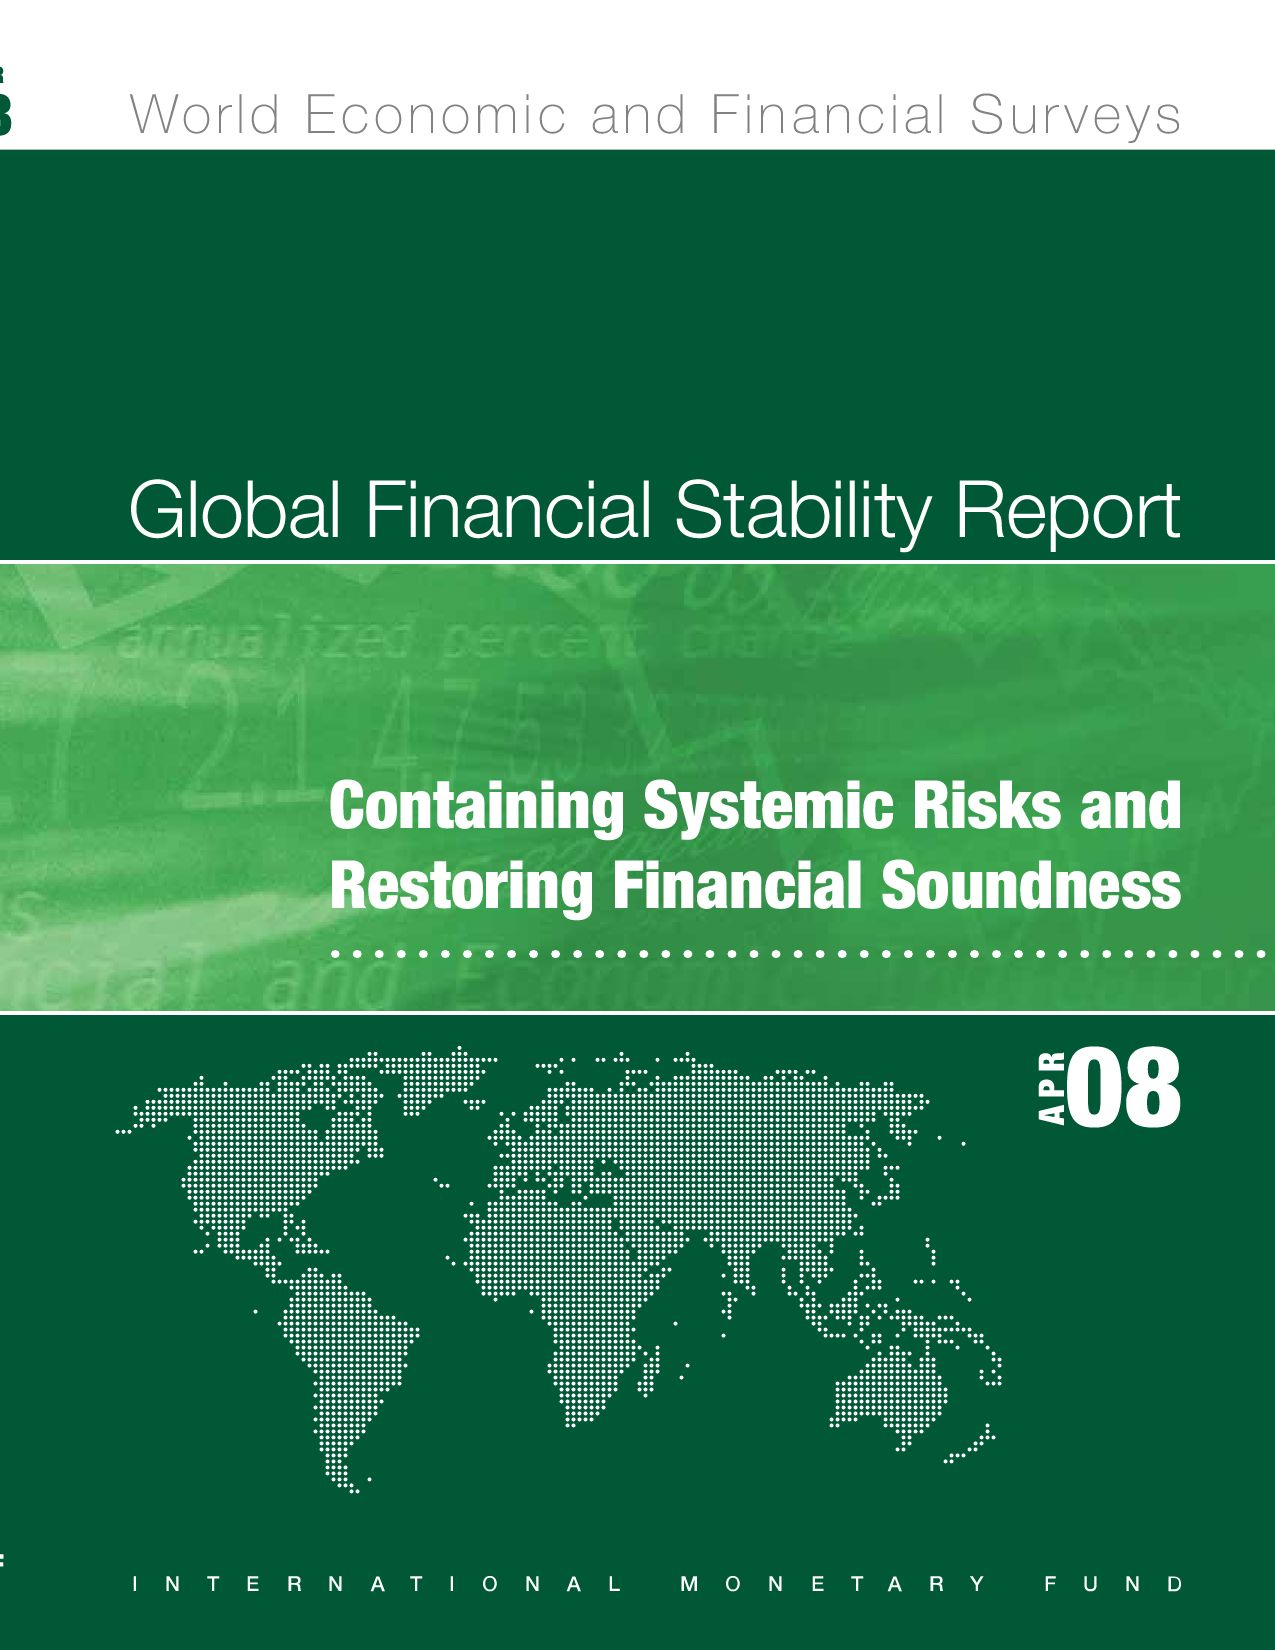 global financial stability report, april 2008 by jose de buerba issuu